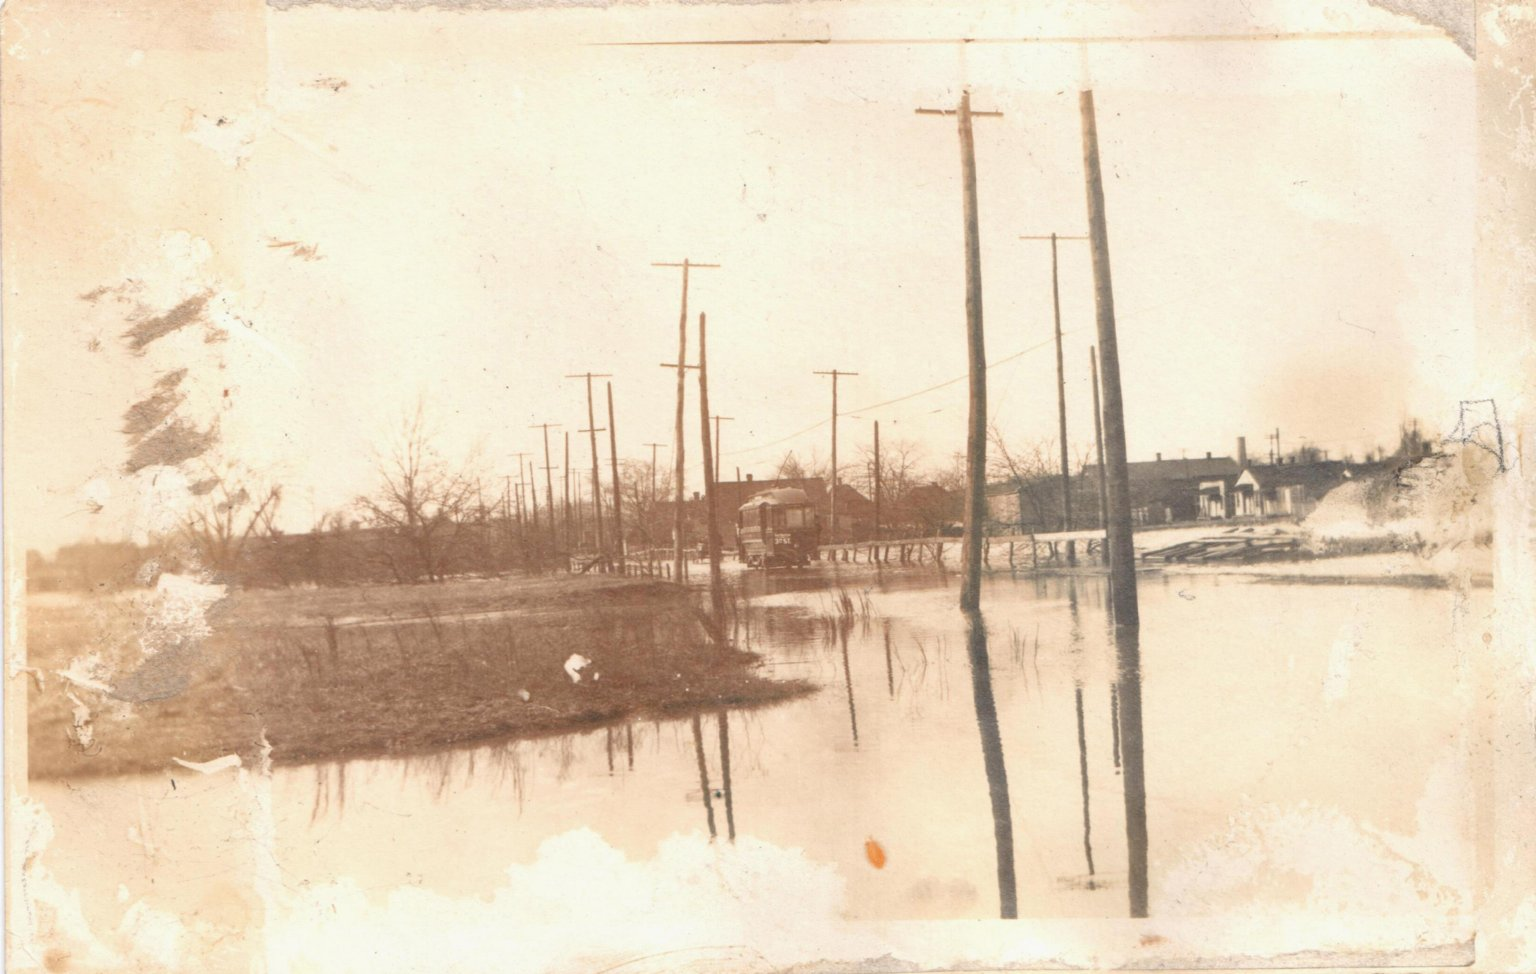 6th and Husband 1913 Flood